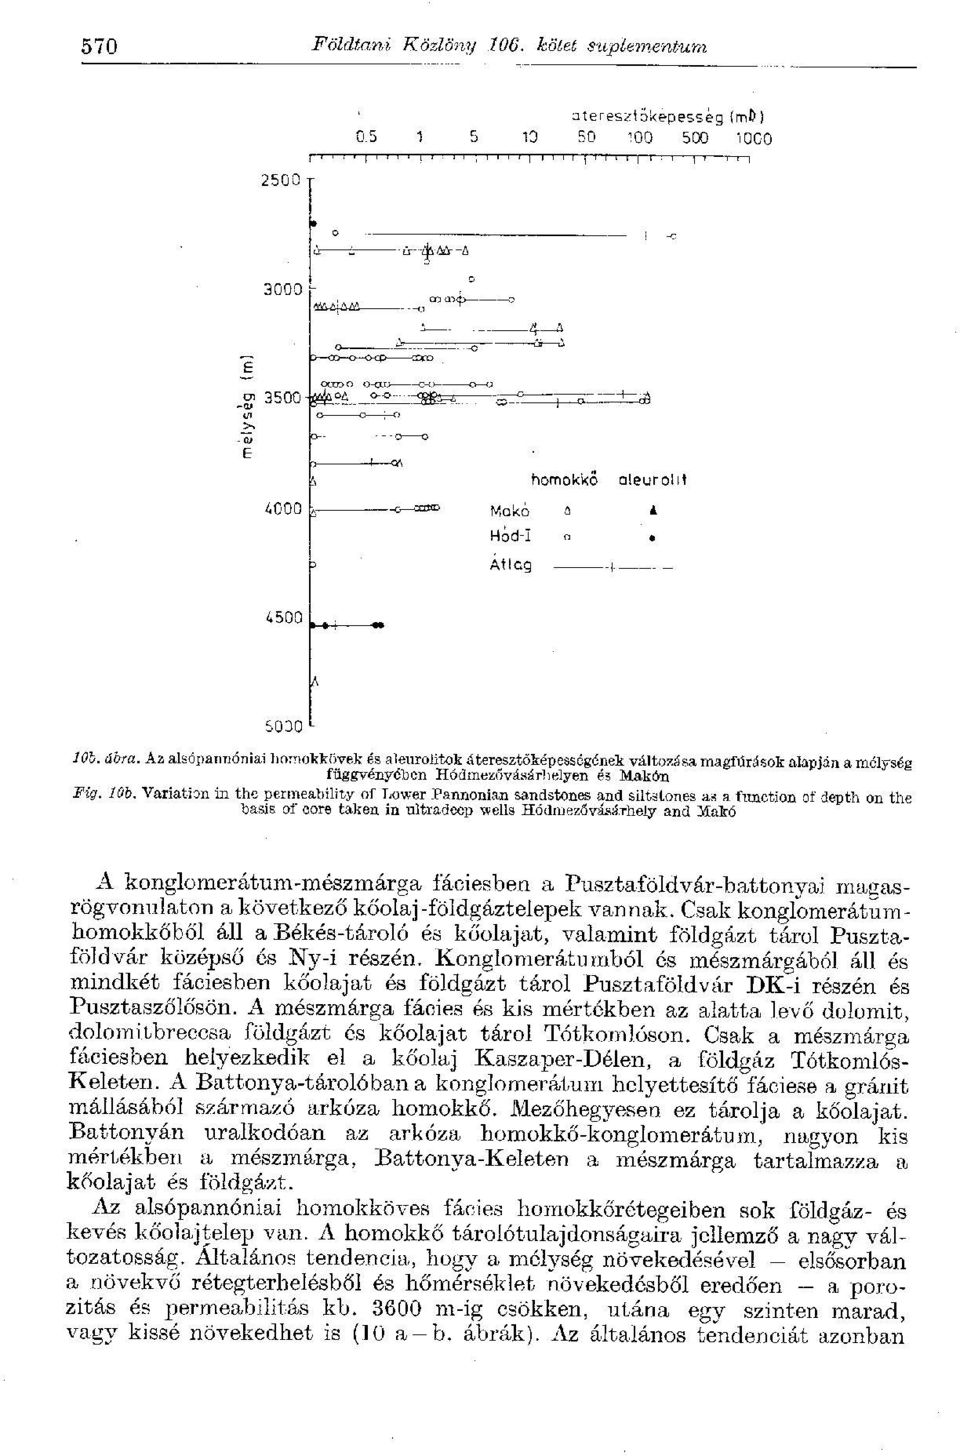 Variation in the permeability of Lower Pannonian sandstones and siltstones as a function of depth on the basis of core taken in ultradeep wells Hódmezővásárhely and Makó A konglomerátum-mészmárga